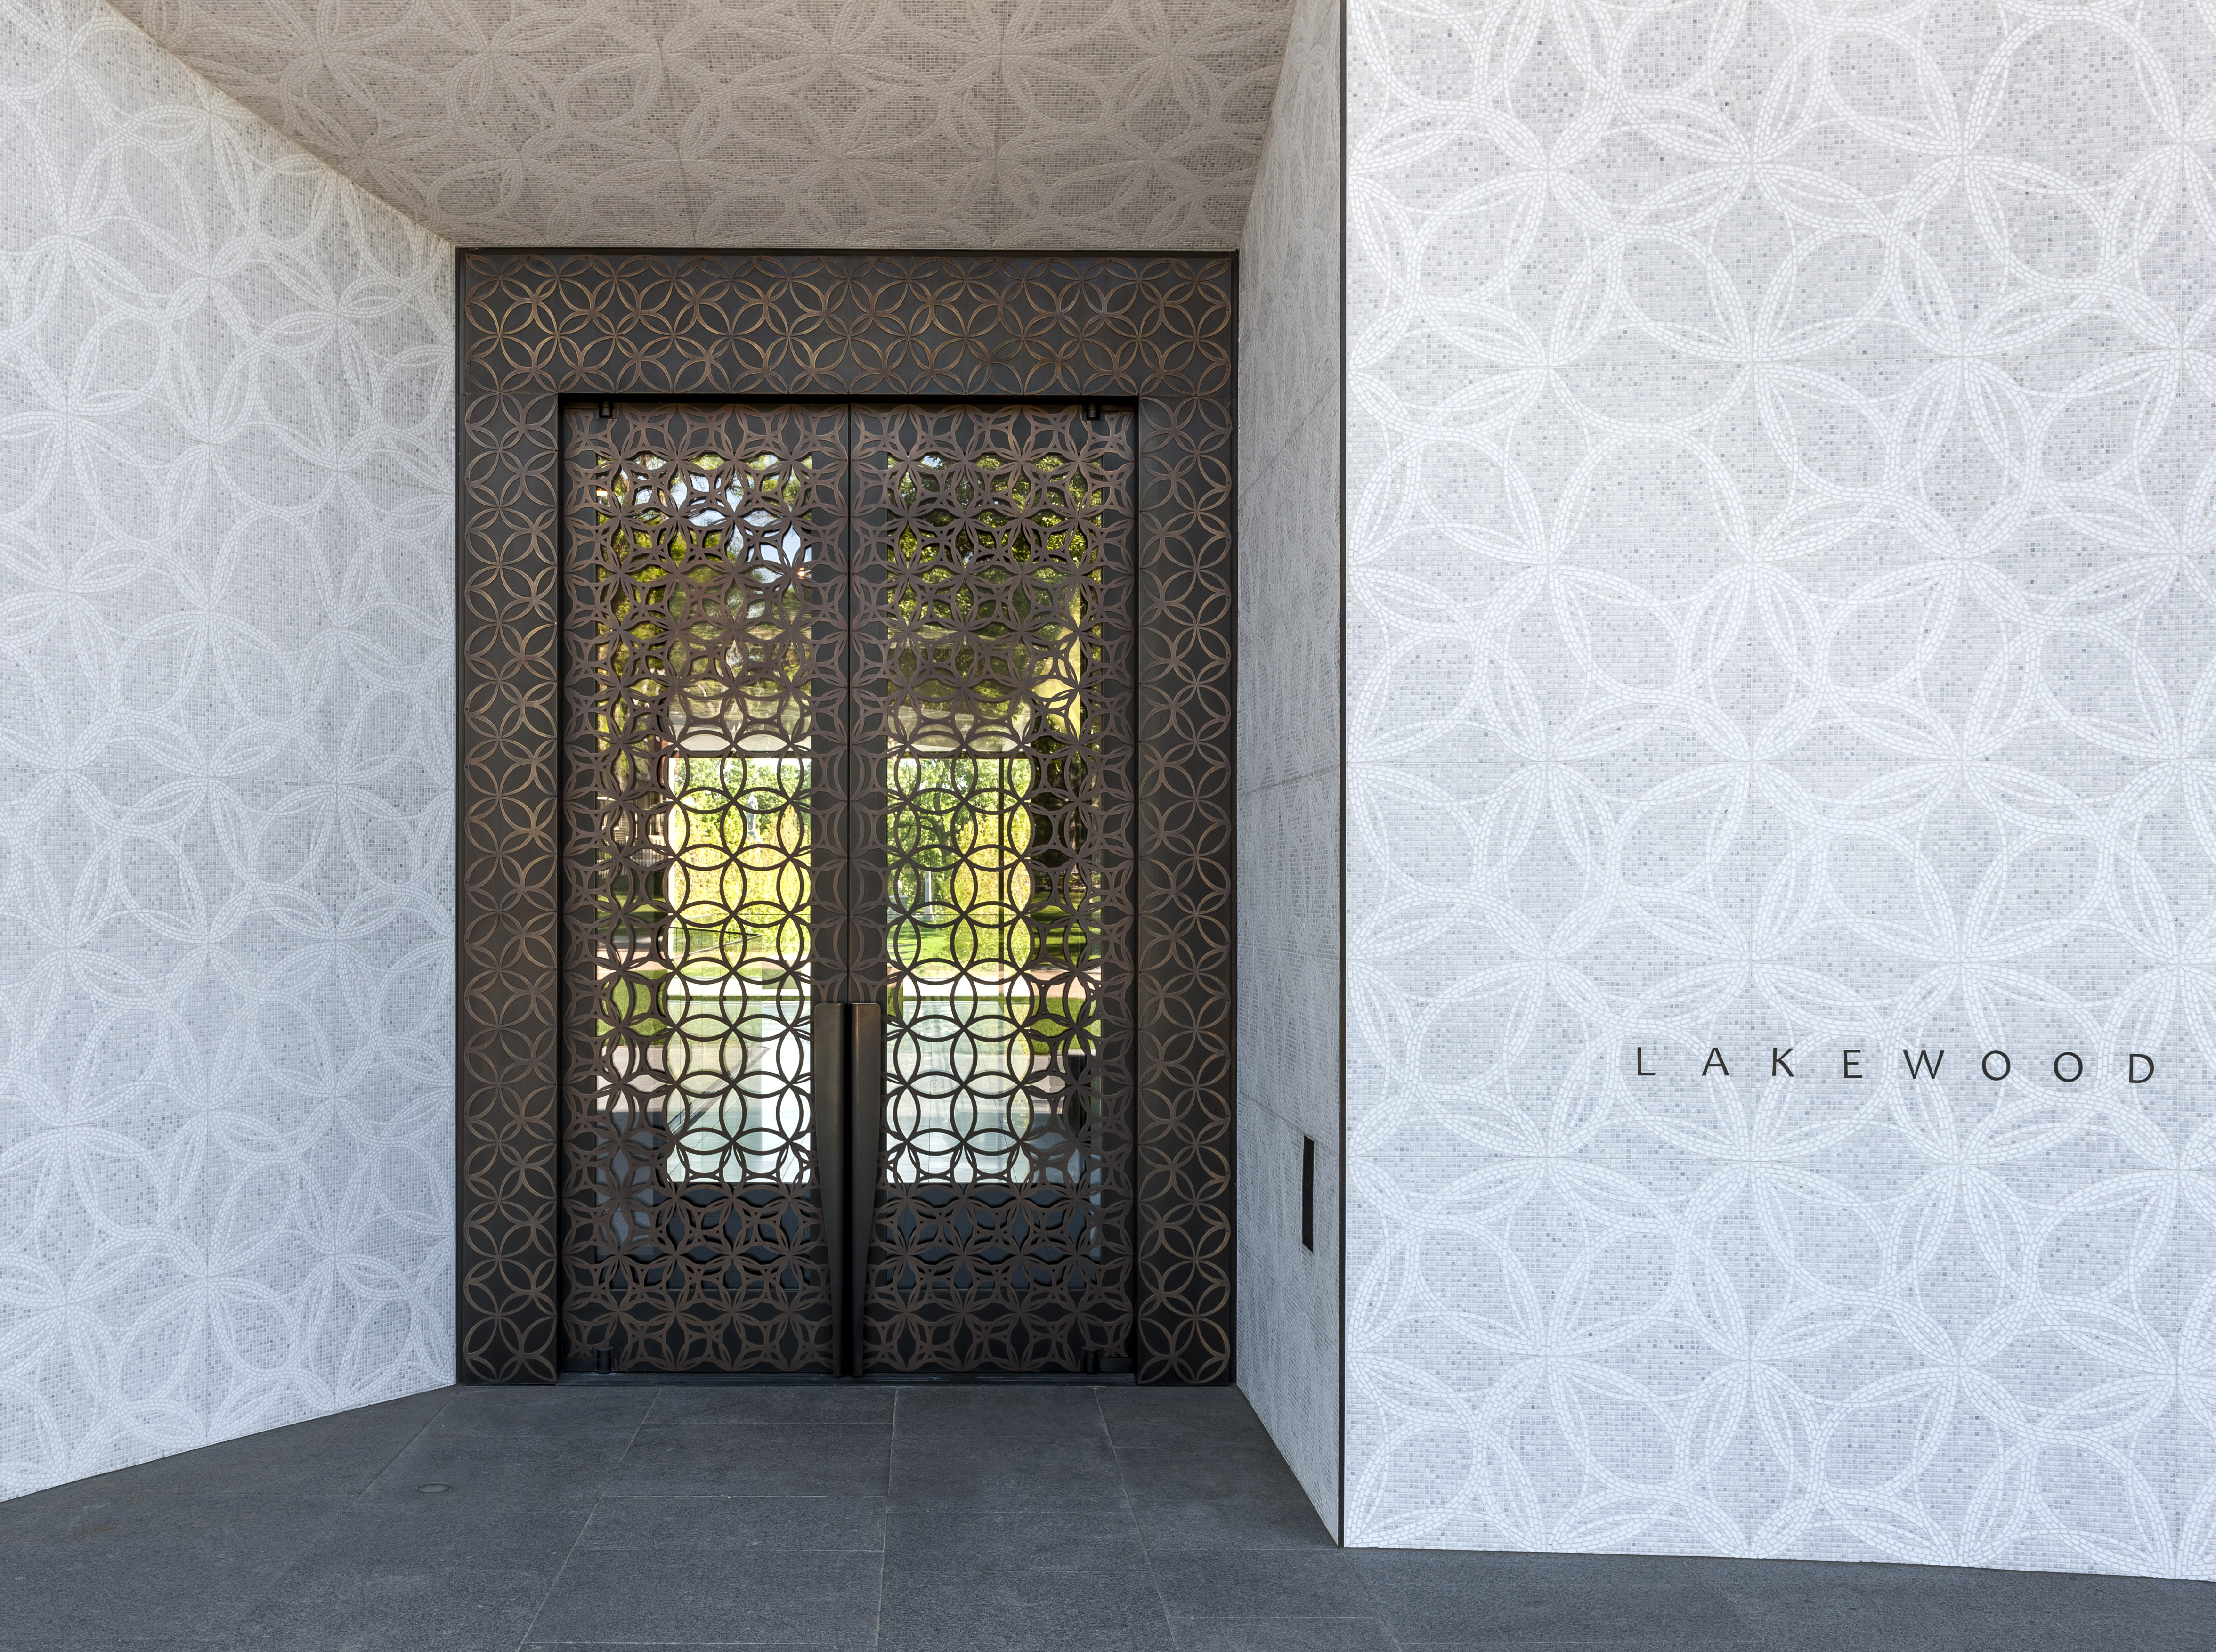 New Mausoleum at Lakewood Cemetery Features Seven Balanced Doors from Ellison Bronze & Press - New Mausoleum at Lakewood Cemetery Features Seven Balanced ...